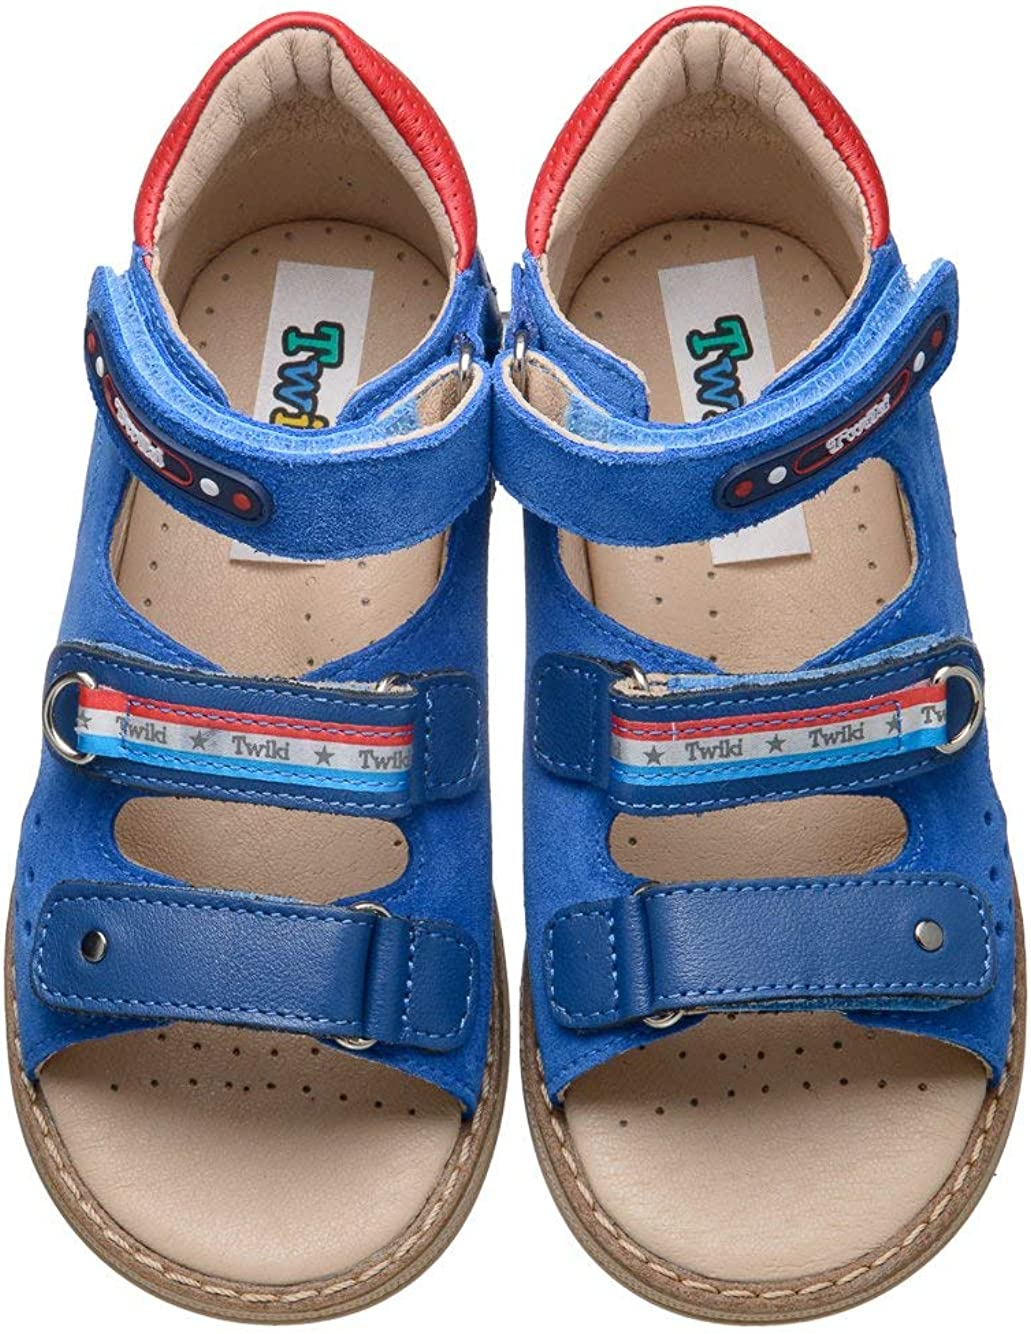 Orthopedic Kids Shoes for Boys and Girls Non-Slip Amortizing Sole and Thomas Heel Twiki Genuine Leather Sandals with Arch Support